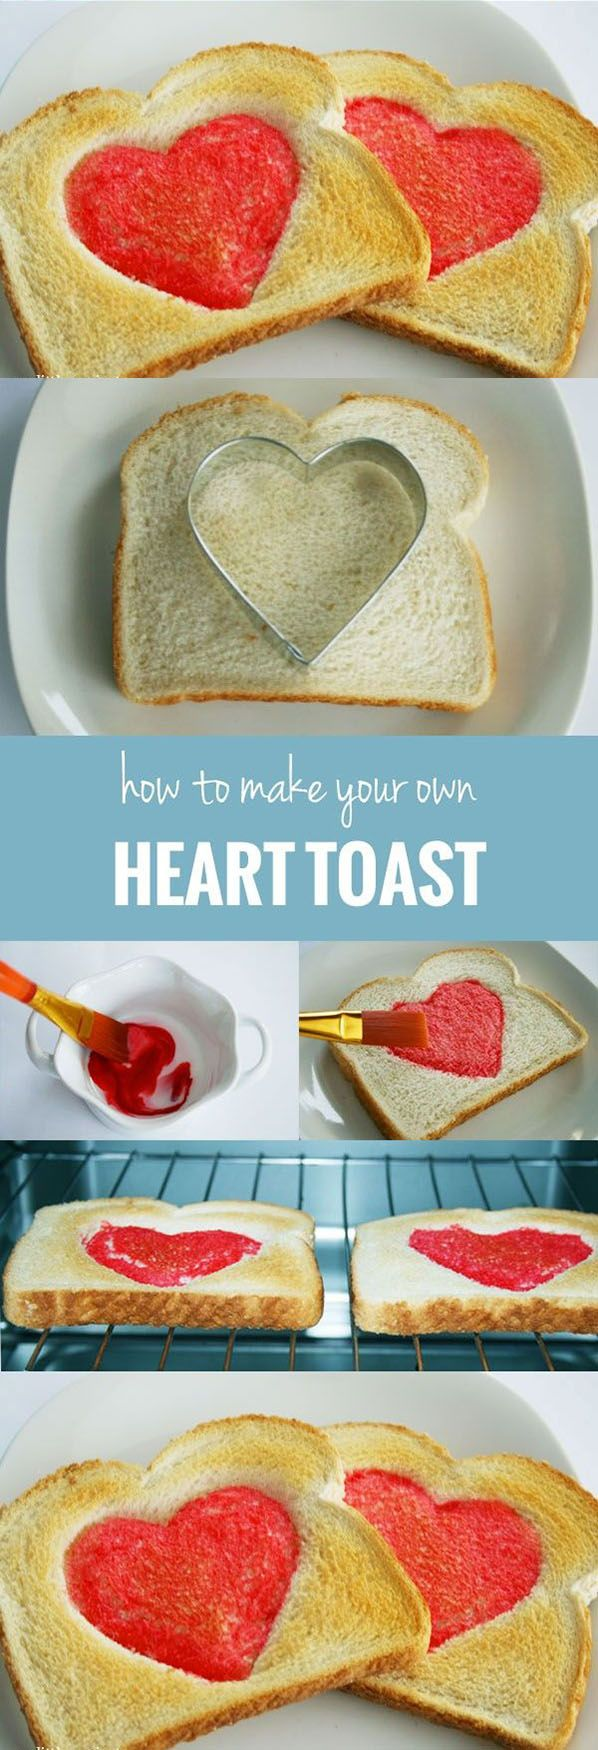 Diy Heart Toast | DIY & Crafts